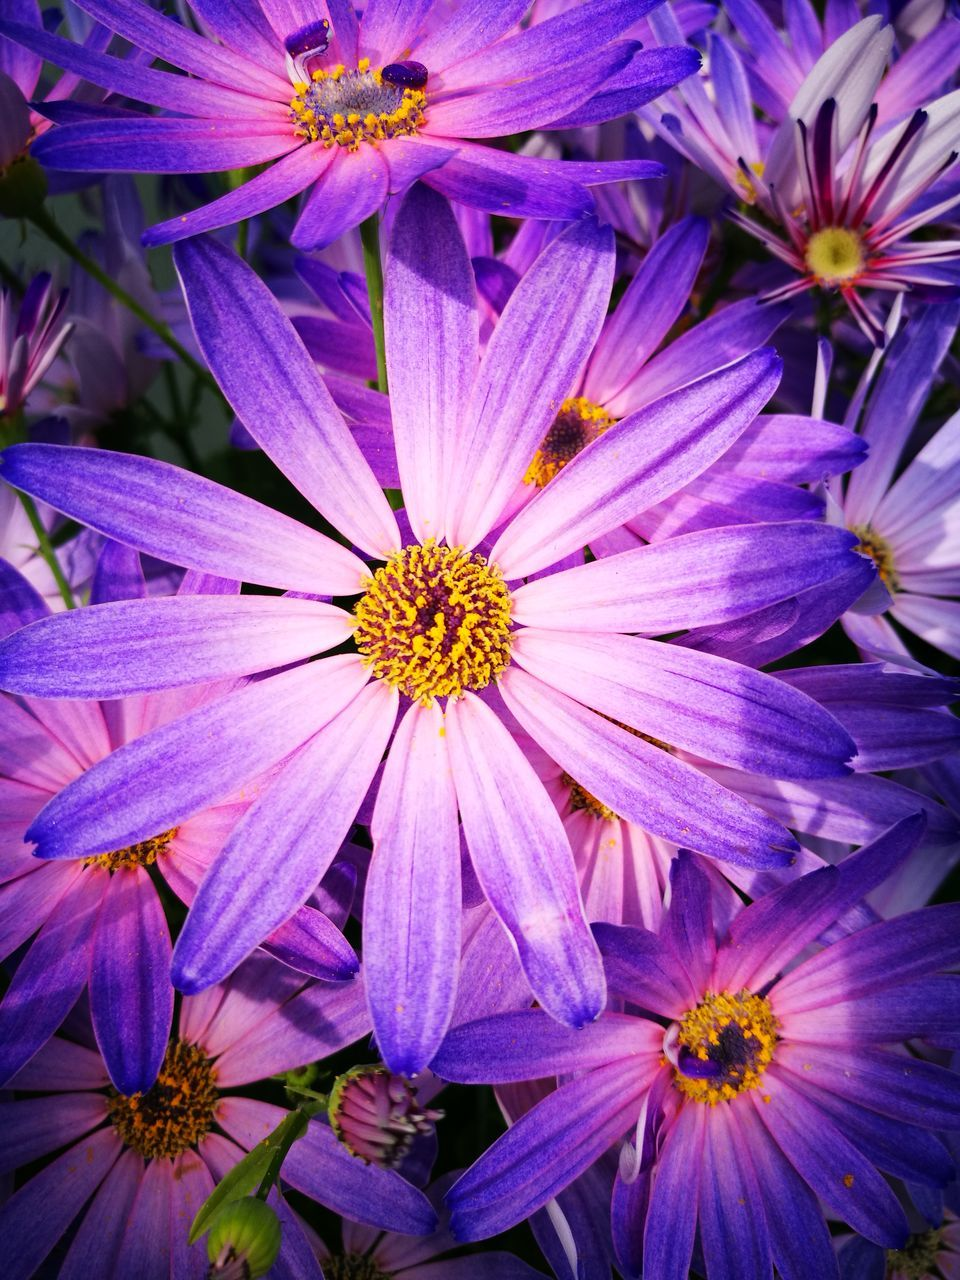 flower, petal, fragility, flower head, beauty in nature, growth, nature, no people, purple, plant, freshness, blooming, pollen, osteospermum, full frame, outdoors, close-up, day